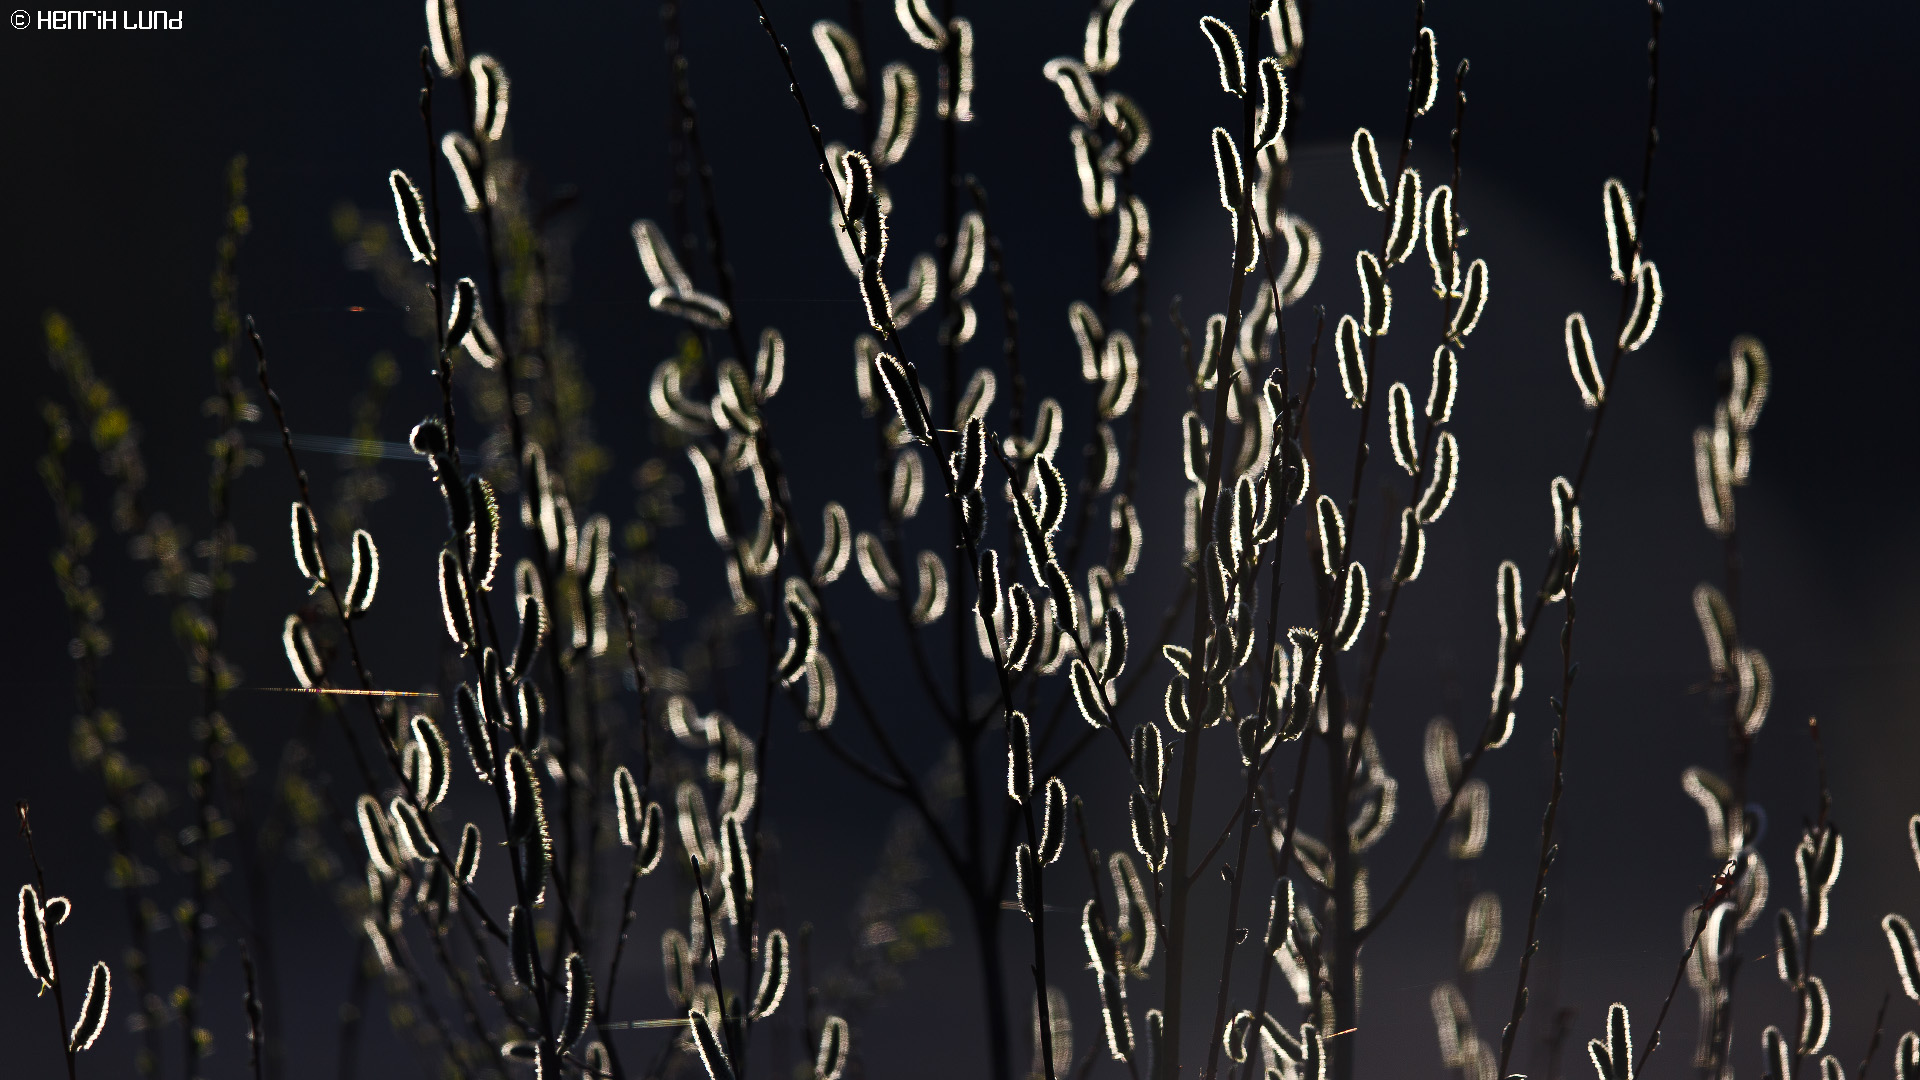 Salix in backlight. Lappträsk, Finland, April 2014